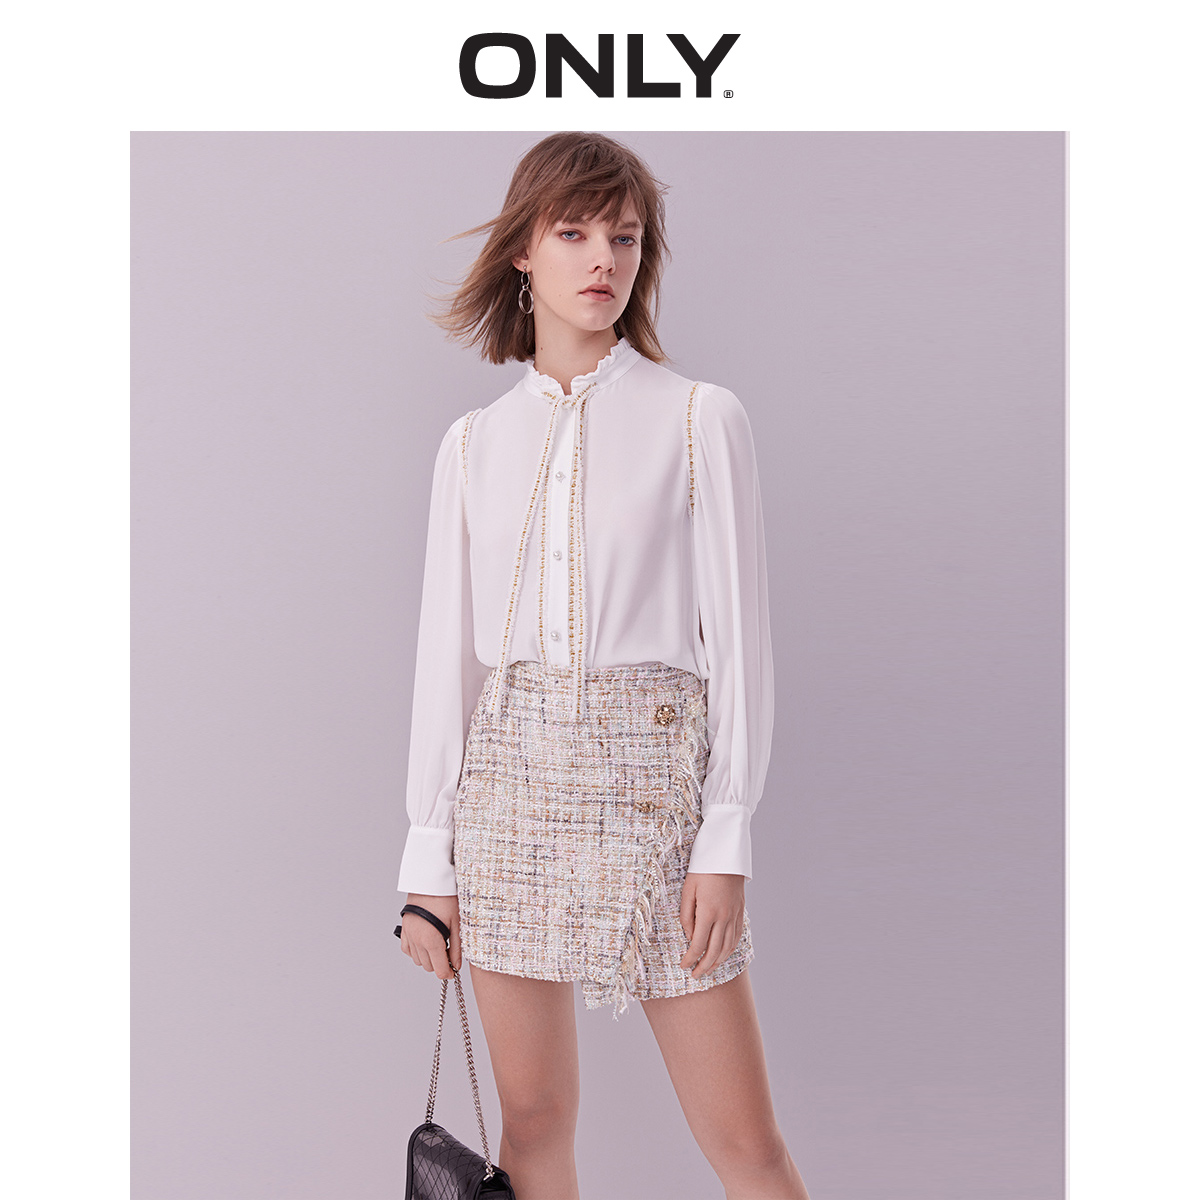 ONLY 2019 Spring Summer New Women's Loose Fit Bowknot Long-sleeved Chiffon Shirt |119104504